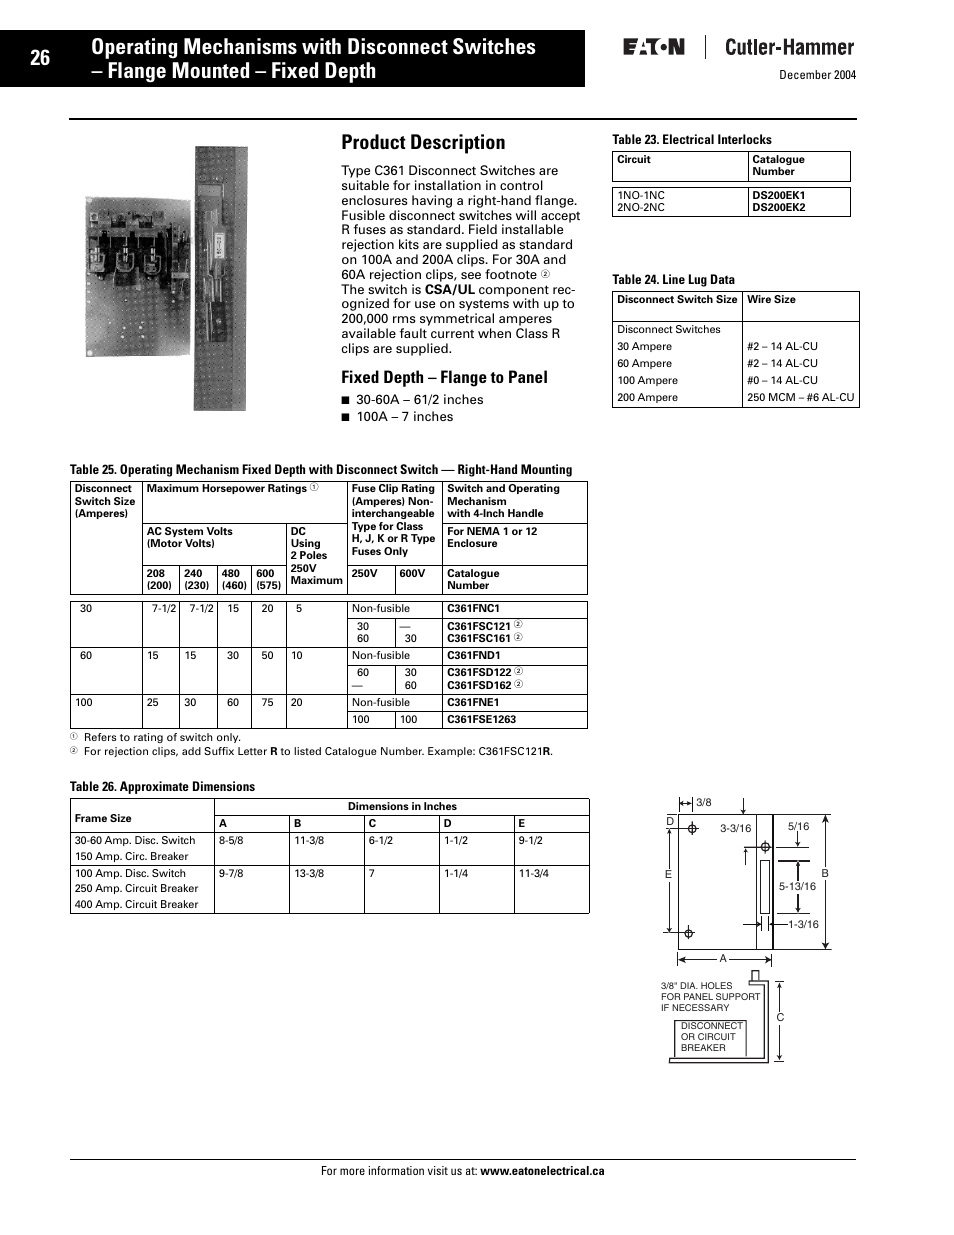 C361 fixed depth disconnects, Product description, Fixed